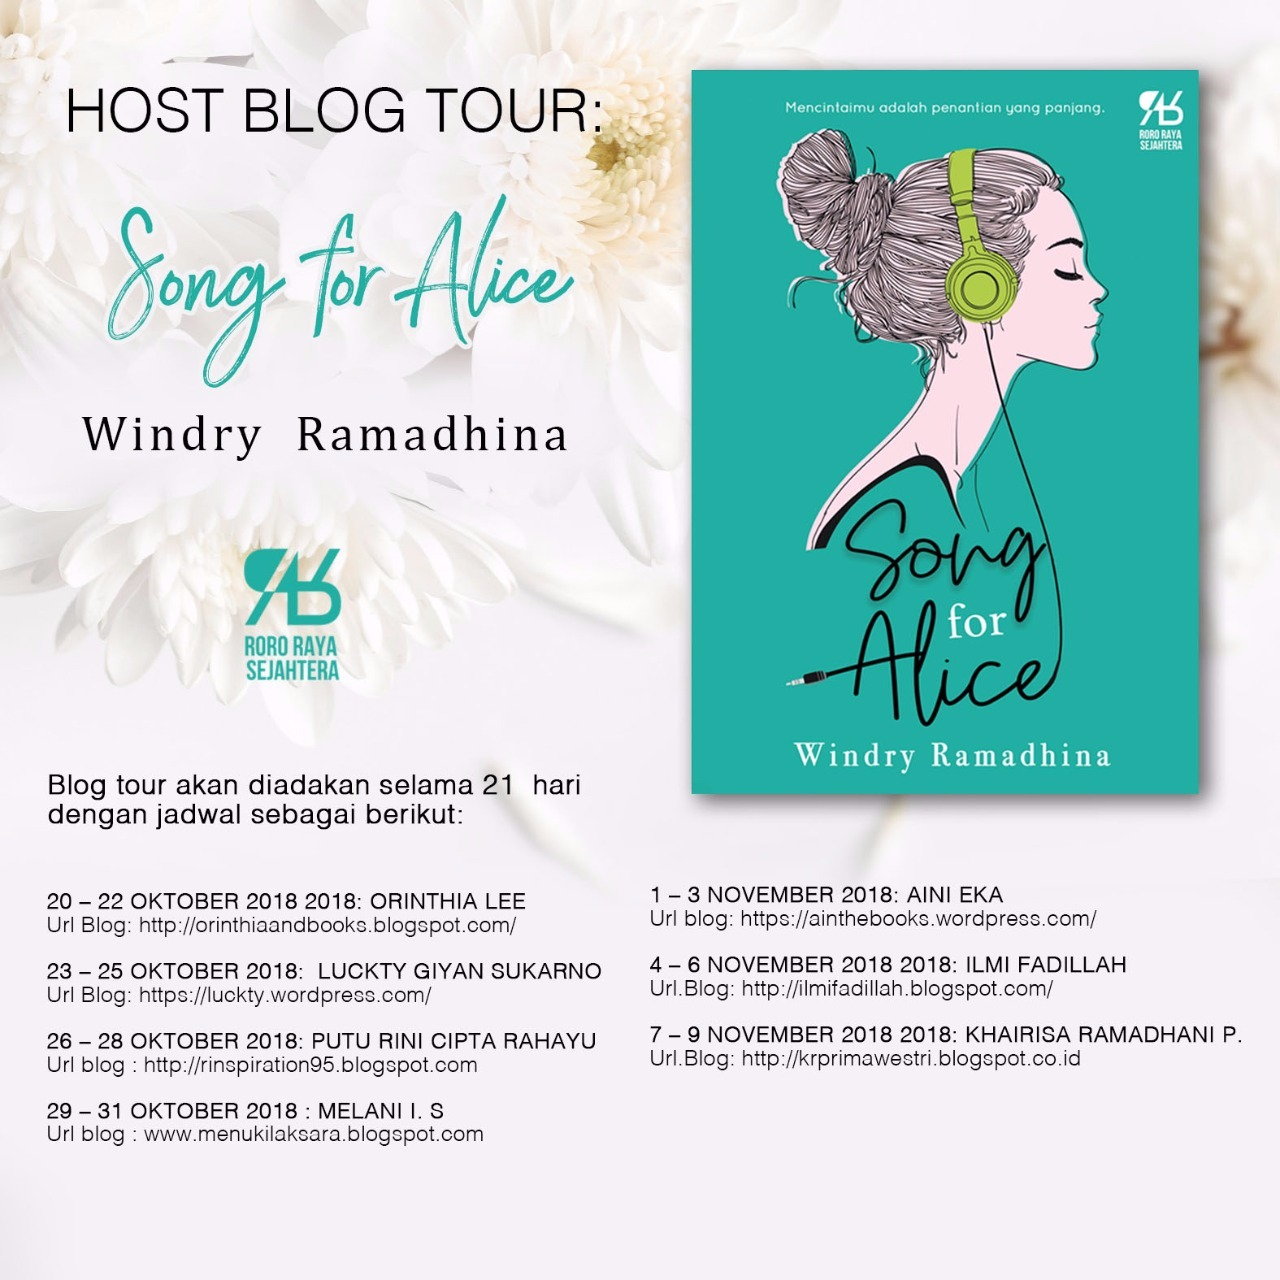 ONGOING BLOGTOUR